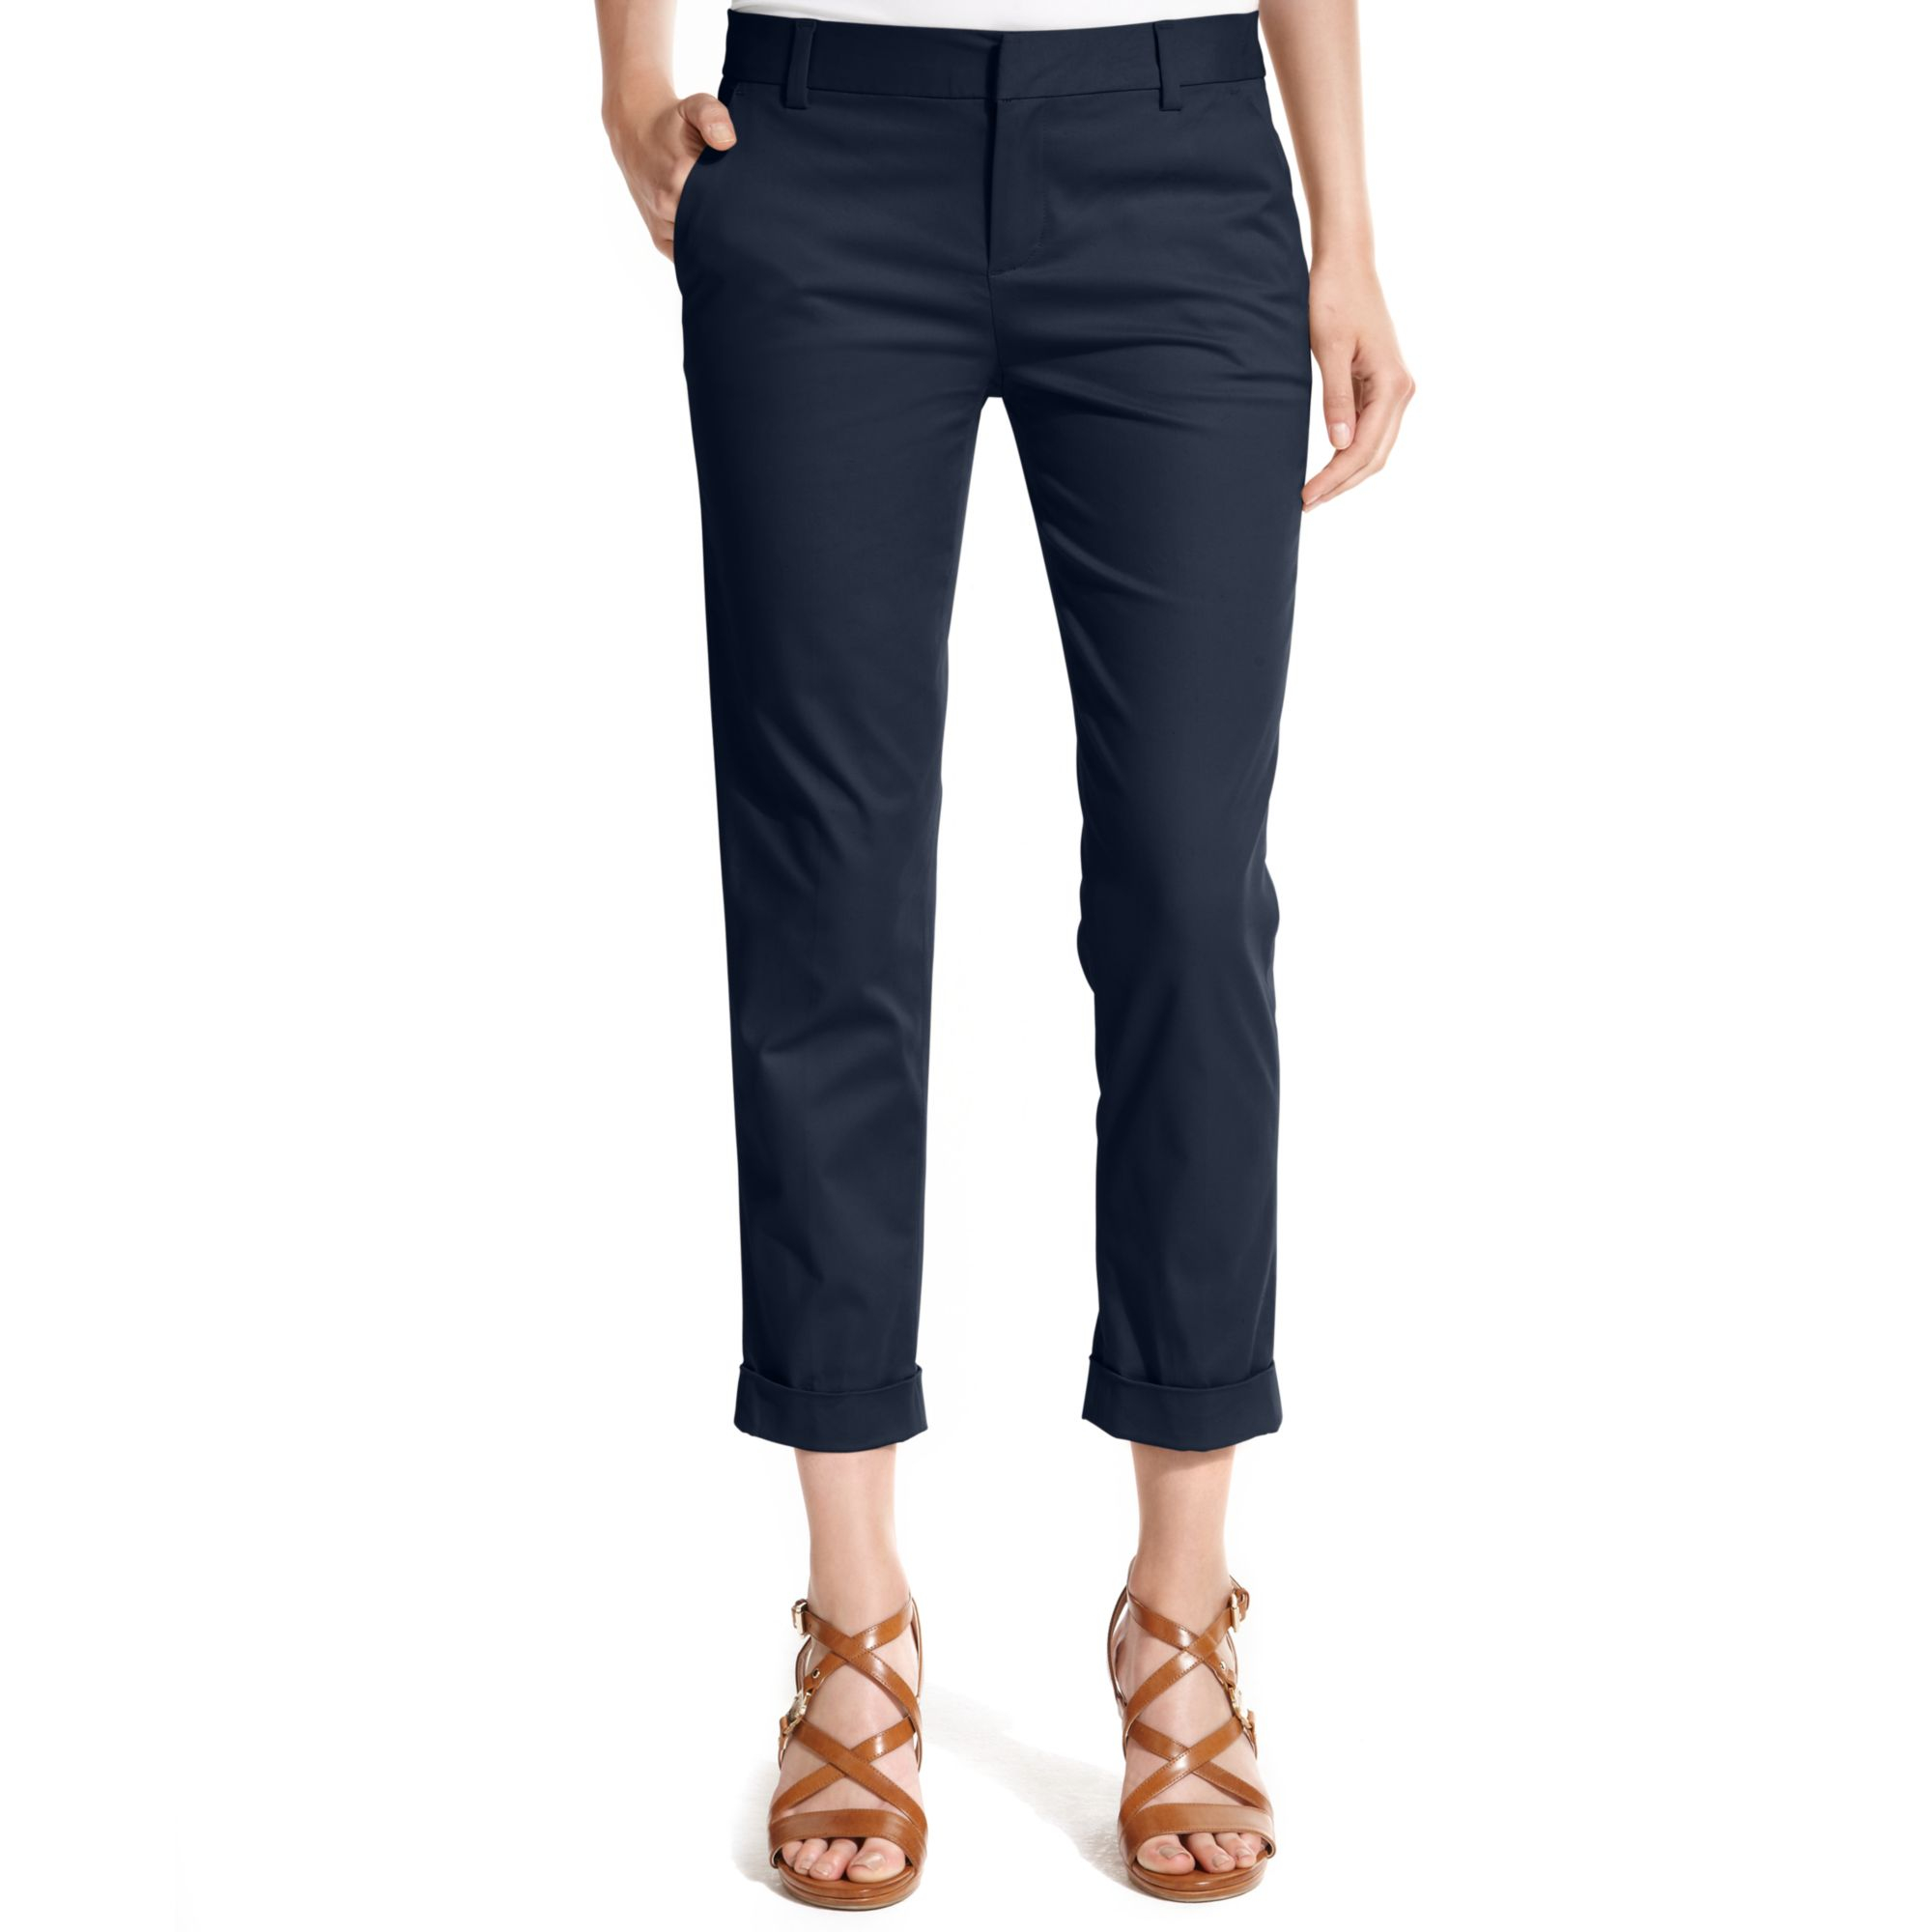 Innovative Tommy Hilfiger Womens Cargo Cropped Capri Pants 12 Jeans 100 Cotton